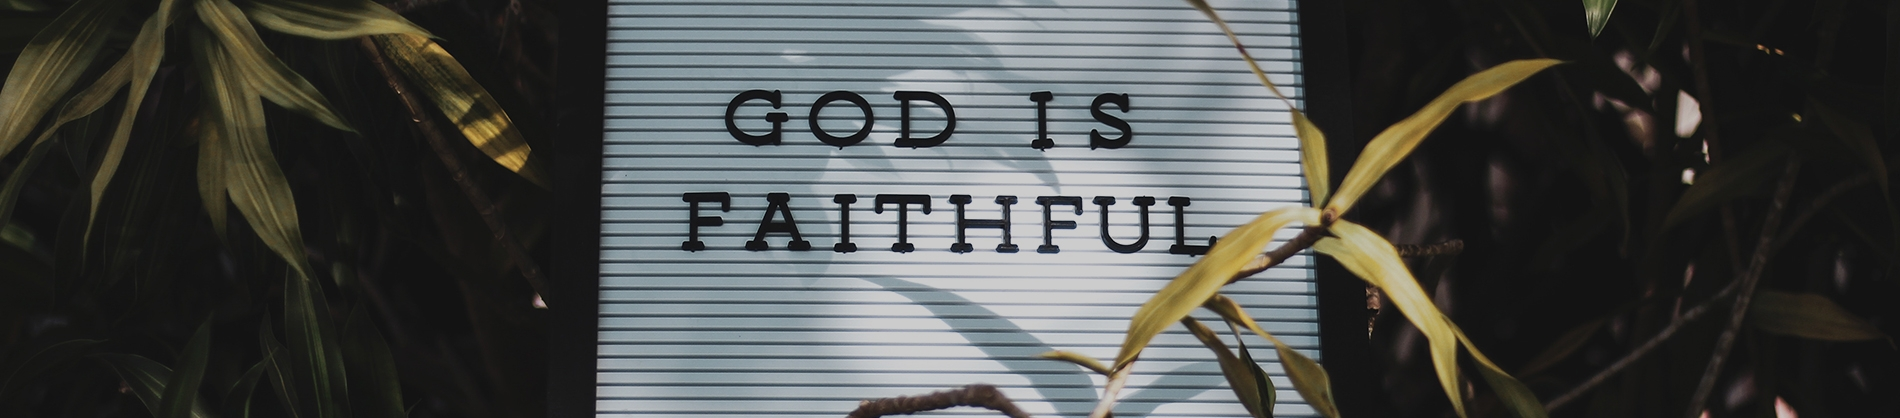 A sign saying 'God is faithful' leaning against some plants